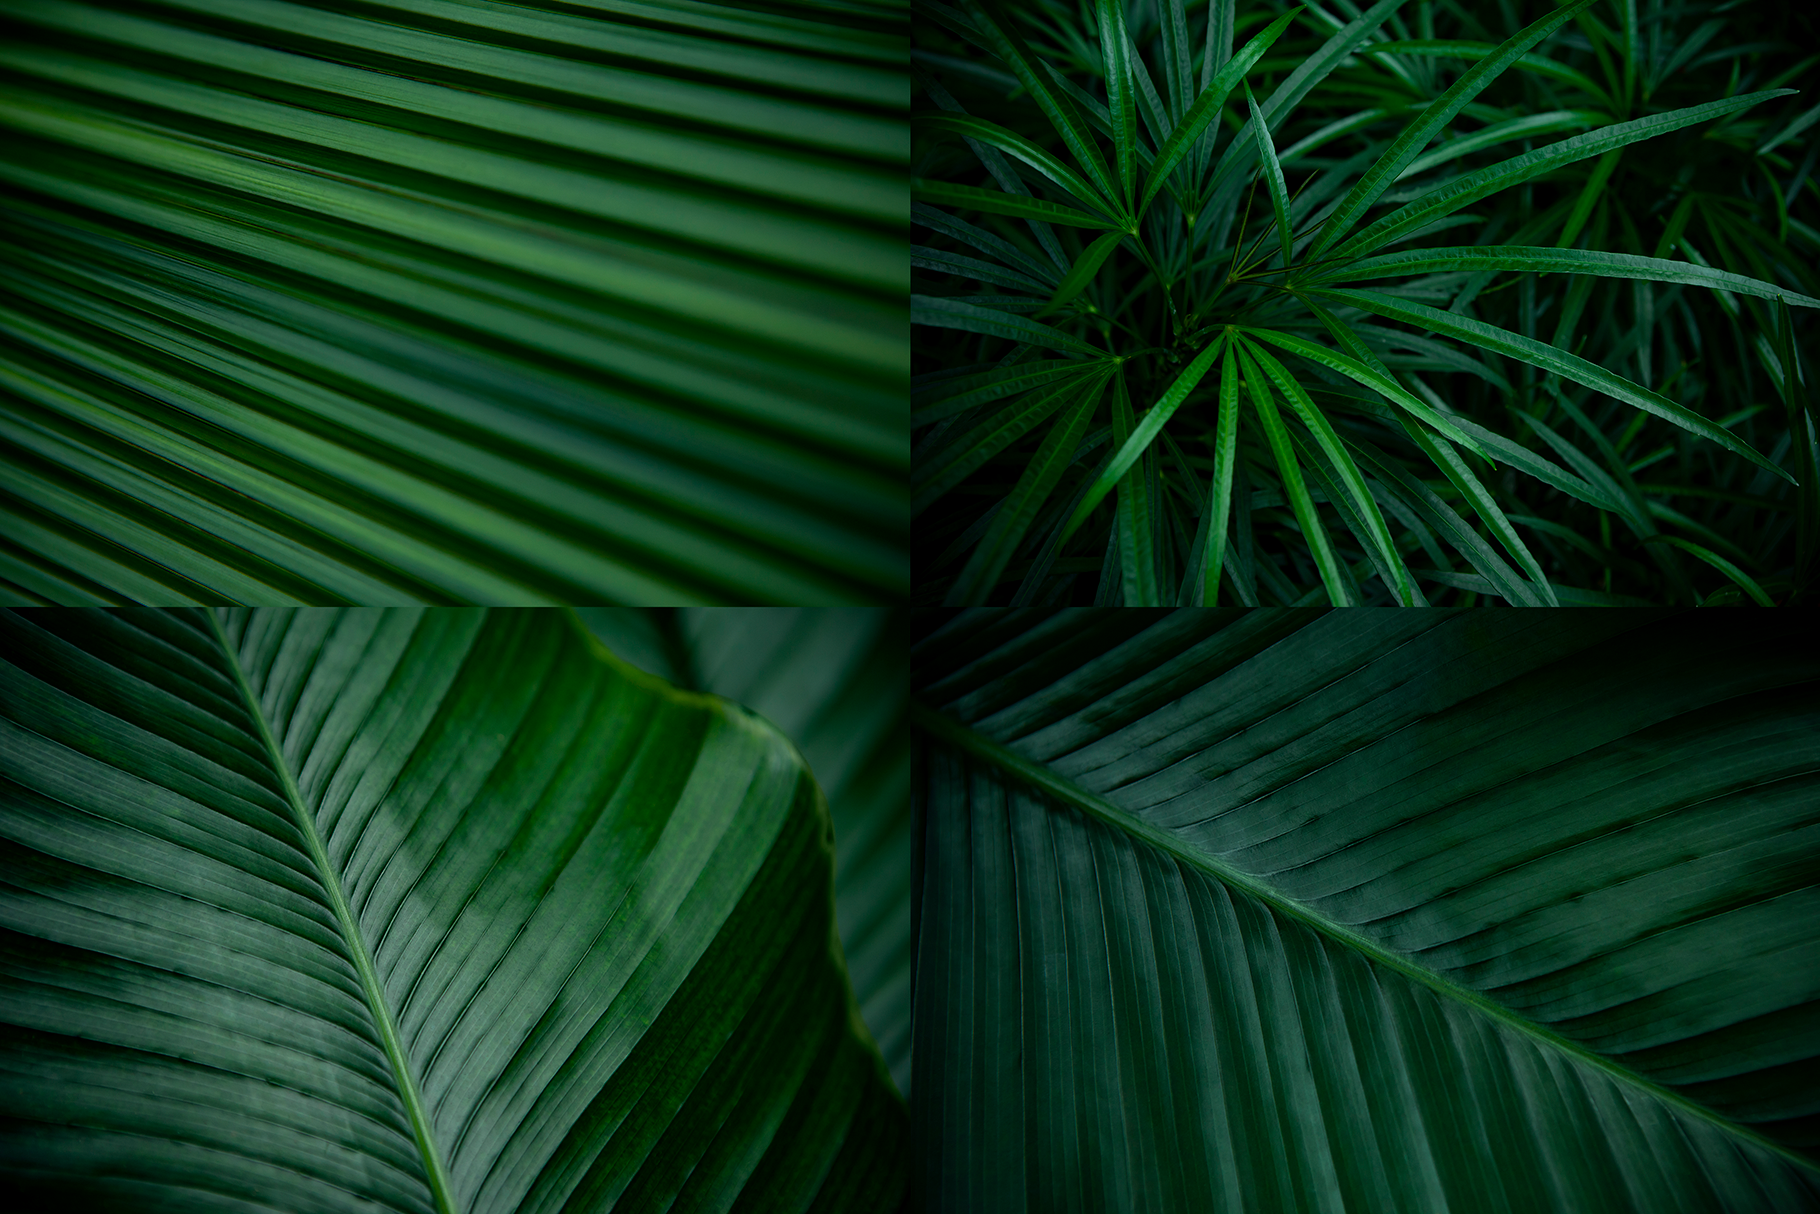 12 Tropical Green Leaves Backgrounds example image 4